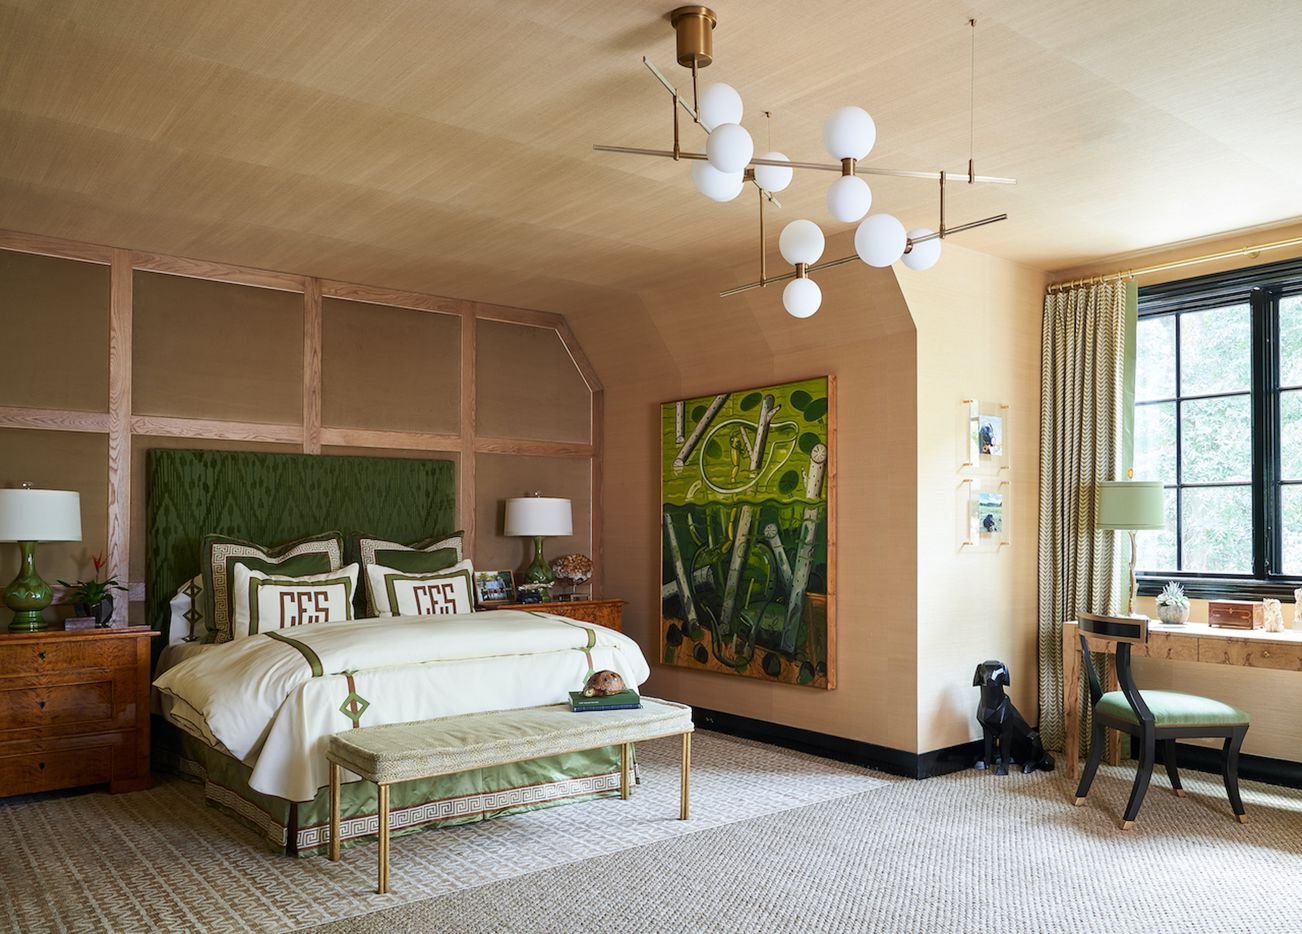 The son's bedroom at the Kips Bay Decorator Show House Dallas. This room was designed by Trish Sheats Interior Design.